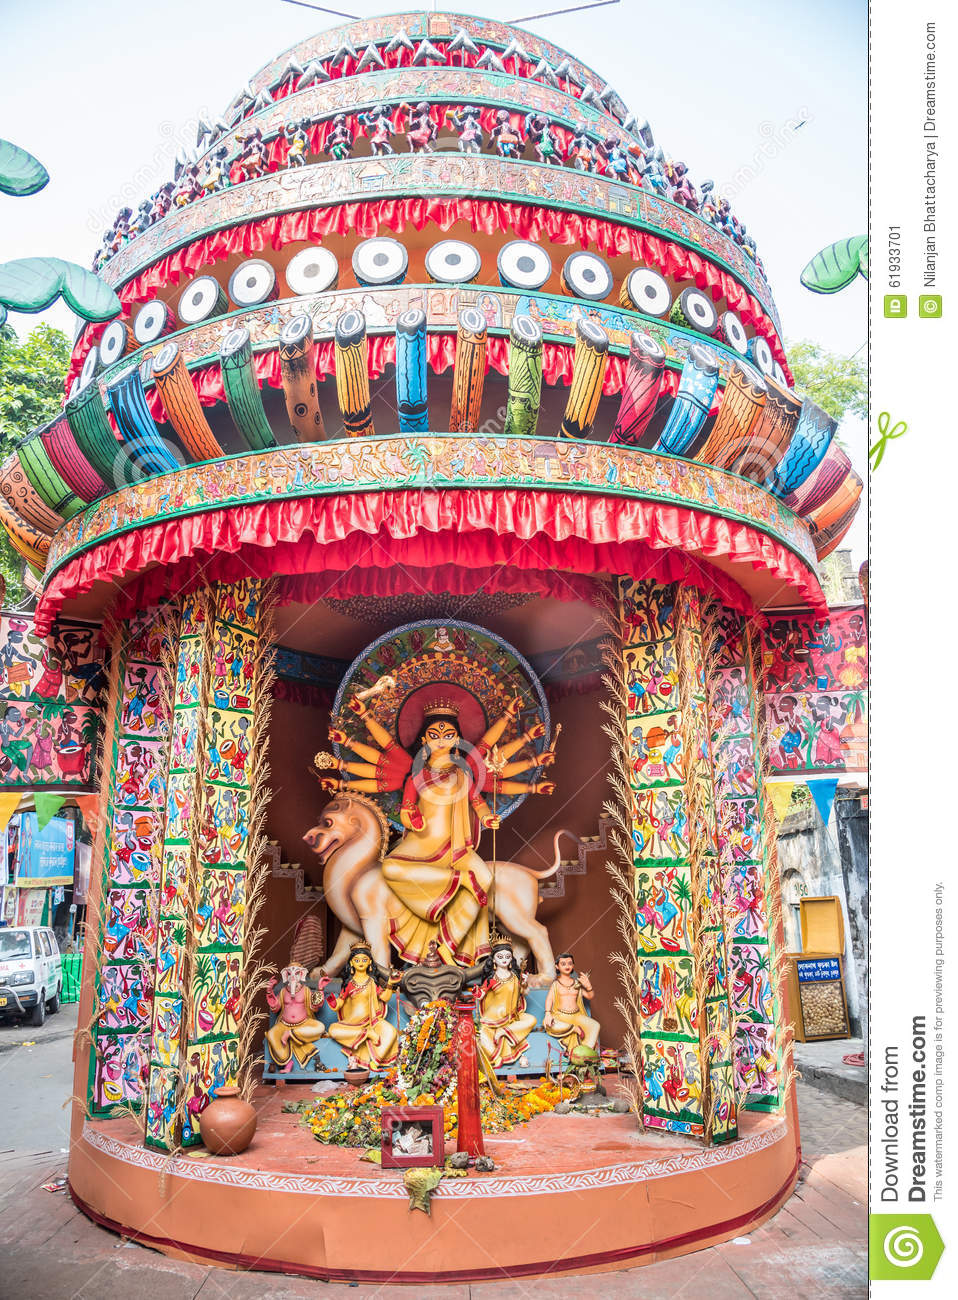 Durga puja pandal and idols stock image image of color asia durga puja pandal and idols thecheapjerseys Images